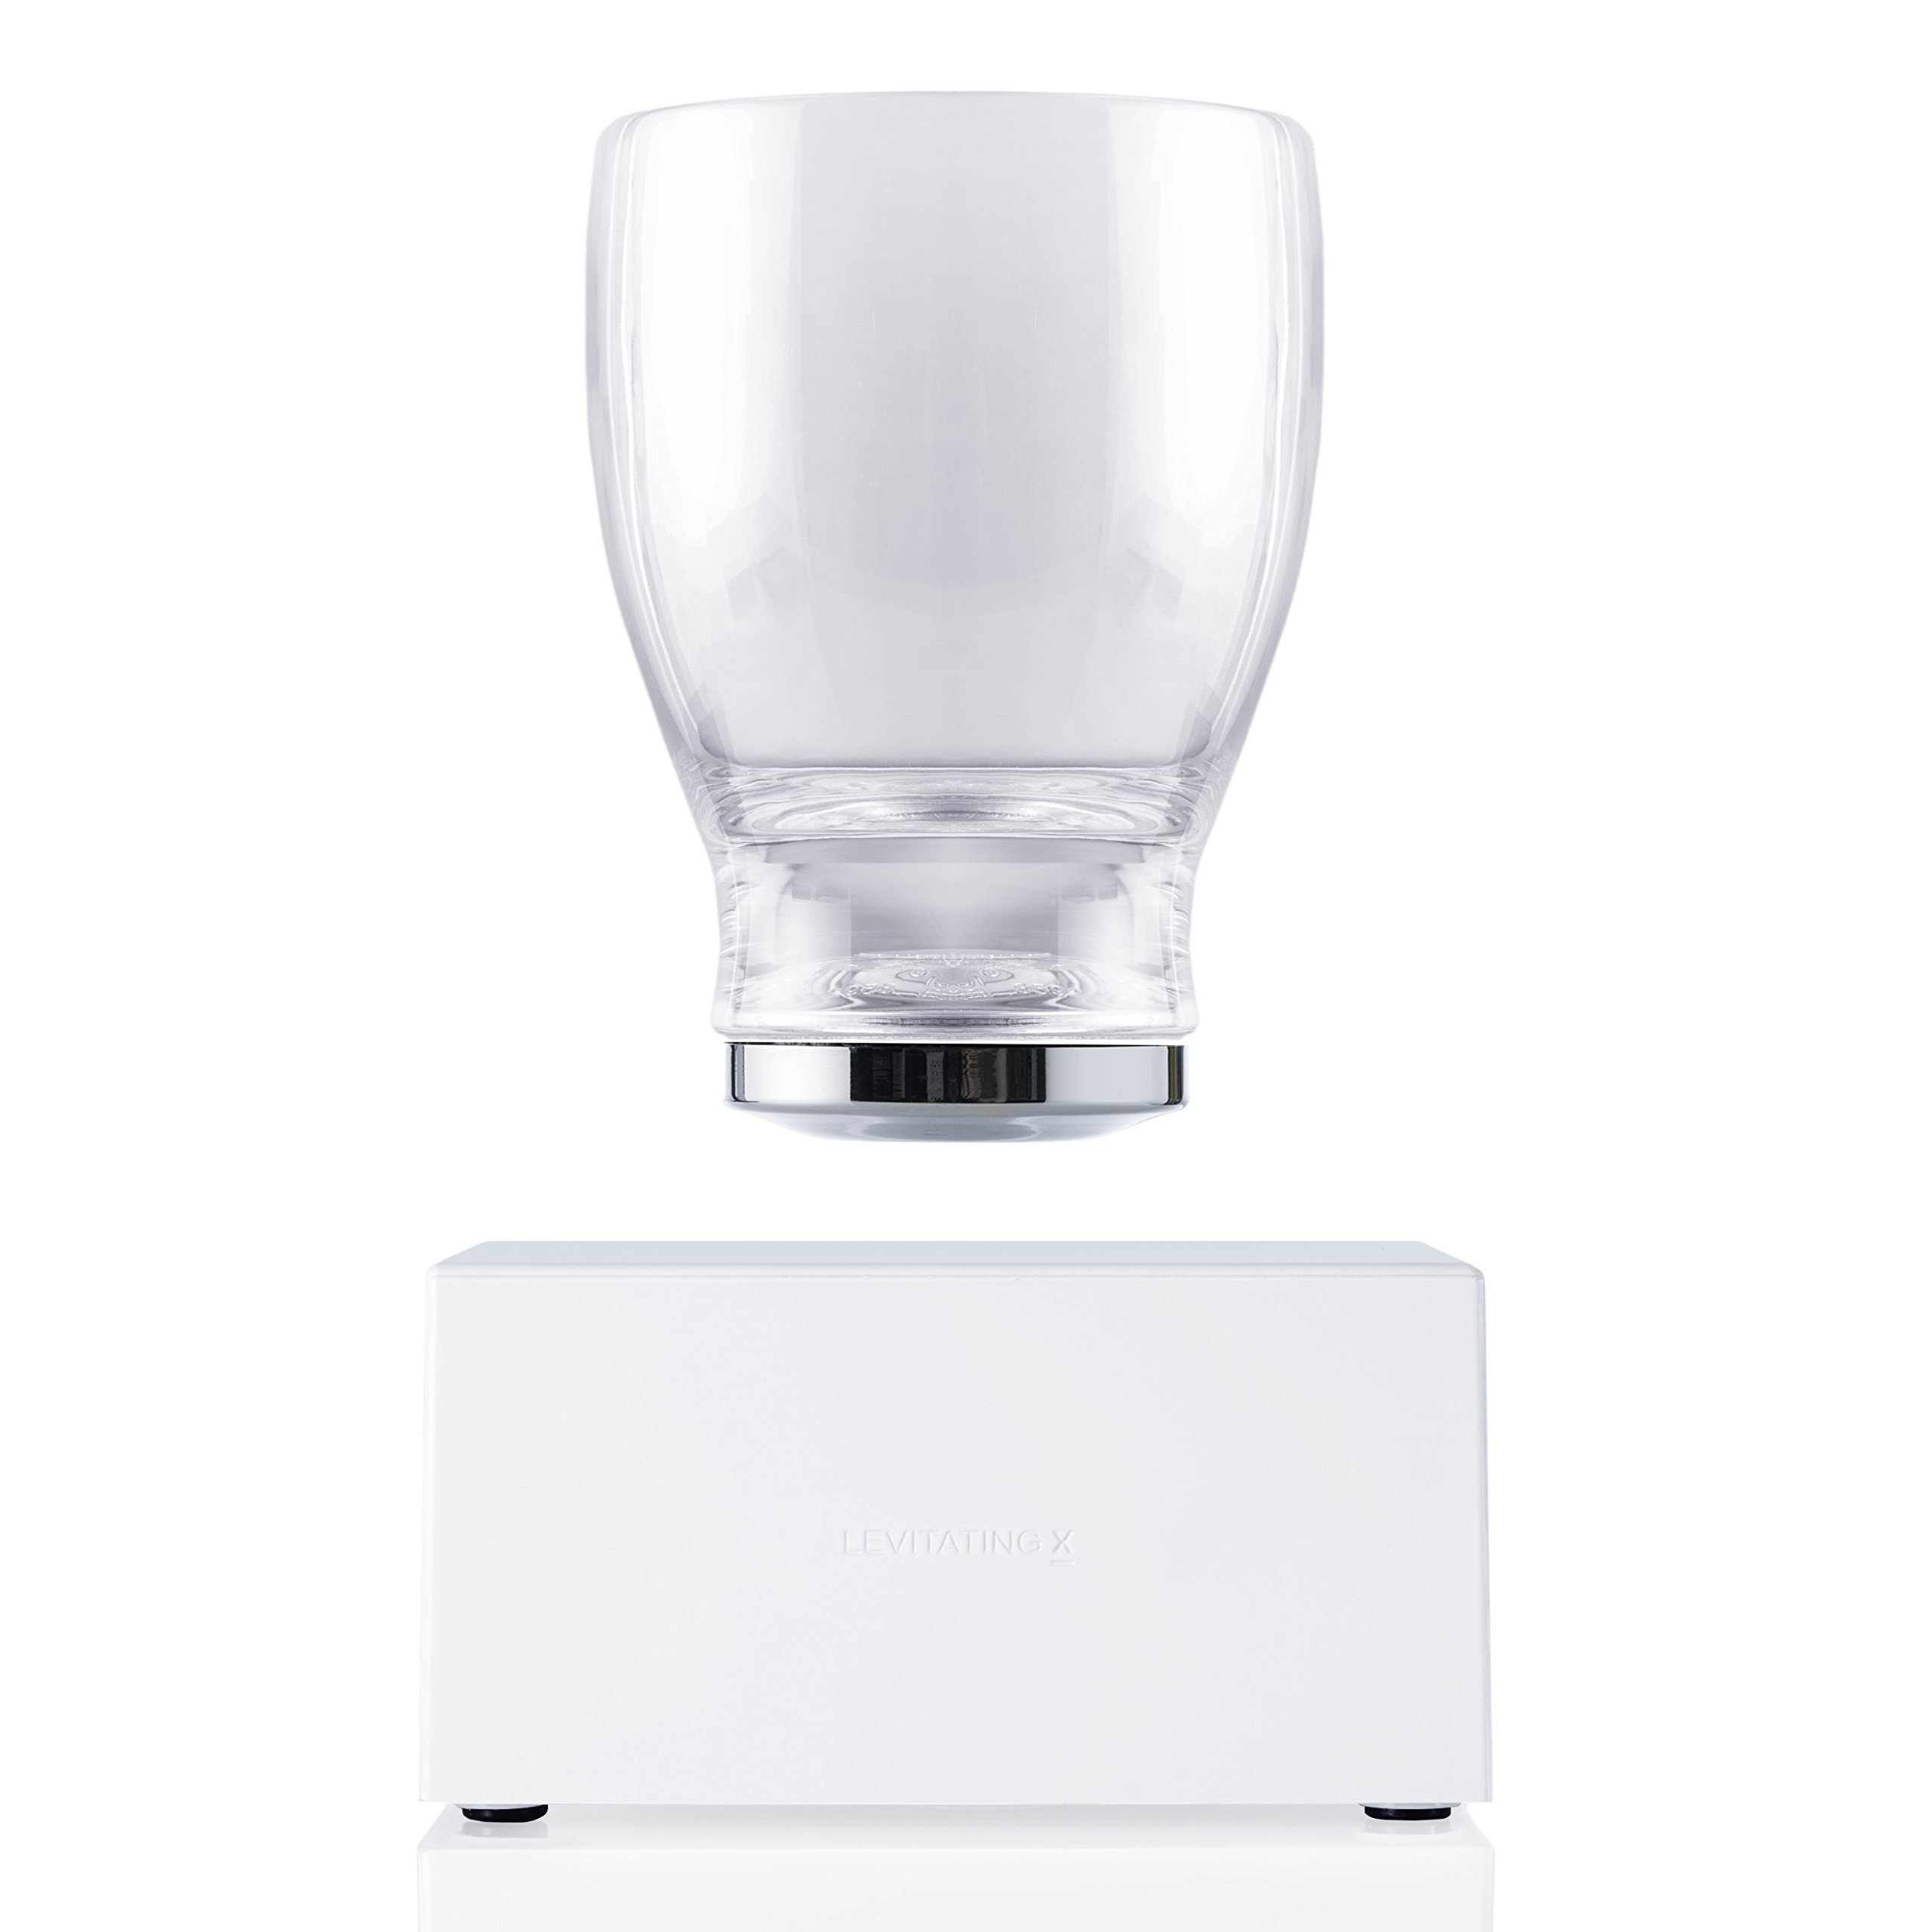 Levitating Cup for Entertaining and Presentation - Wireless Base